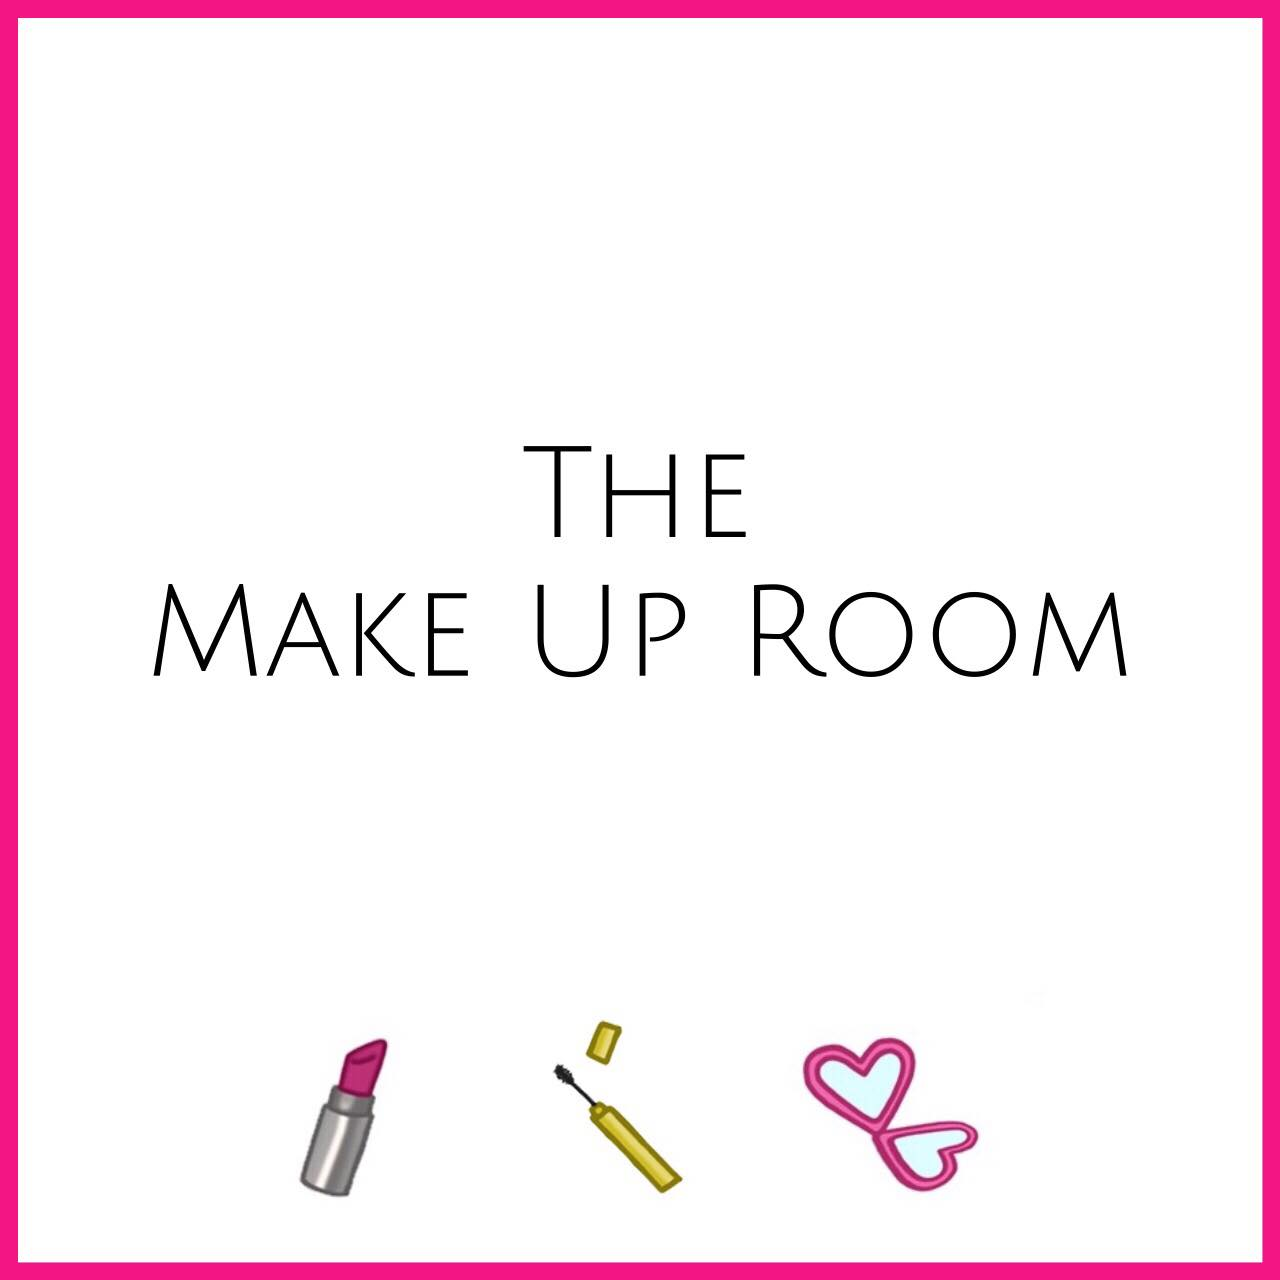 The Make Up Room